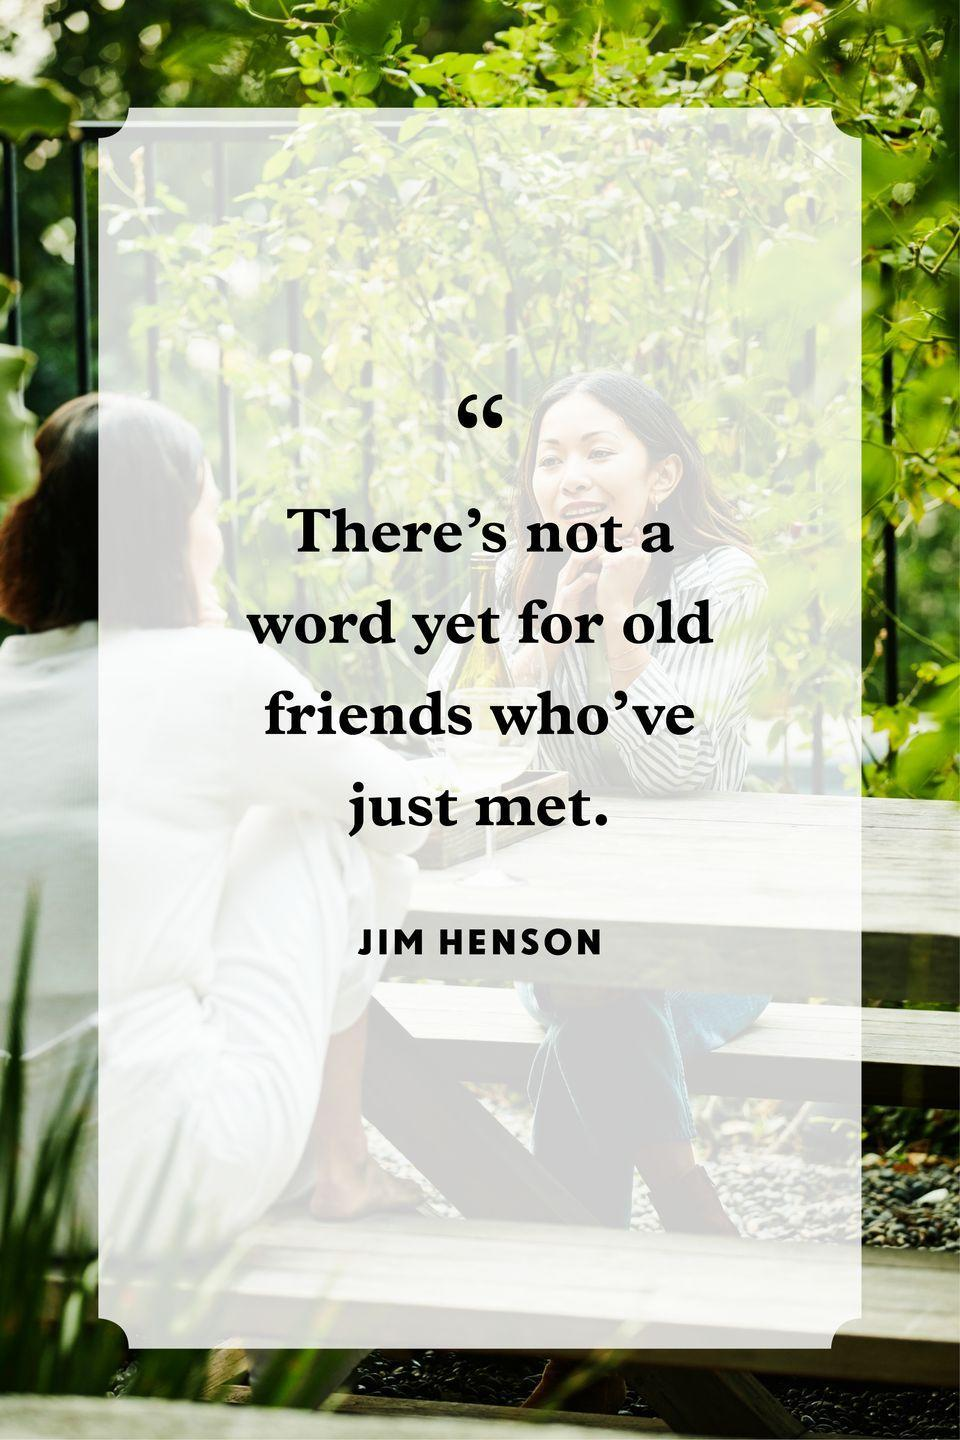 "<p>""There's not a word yet for old friends who've just met.""</p>"